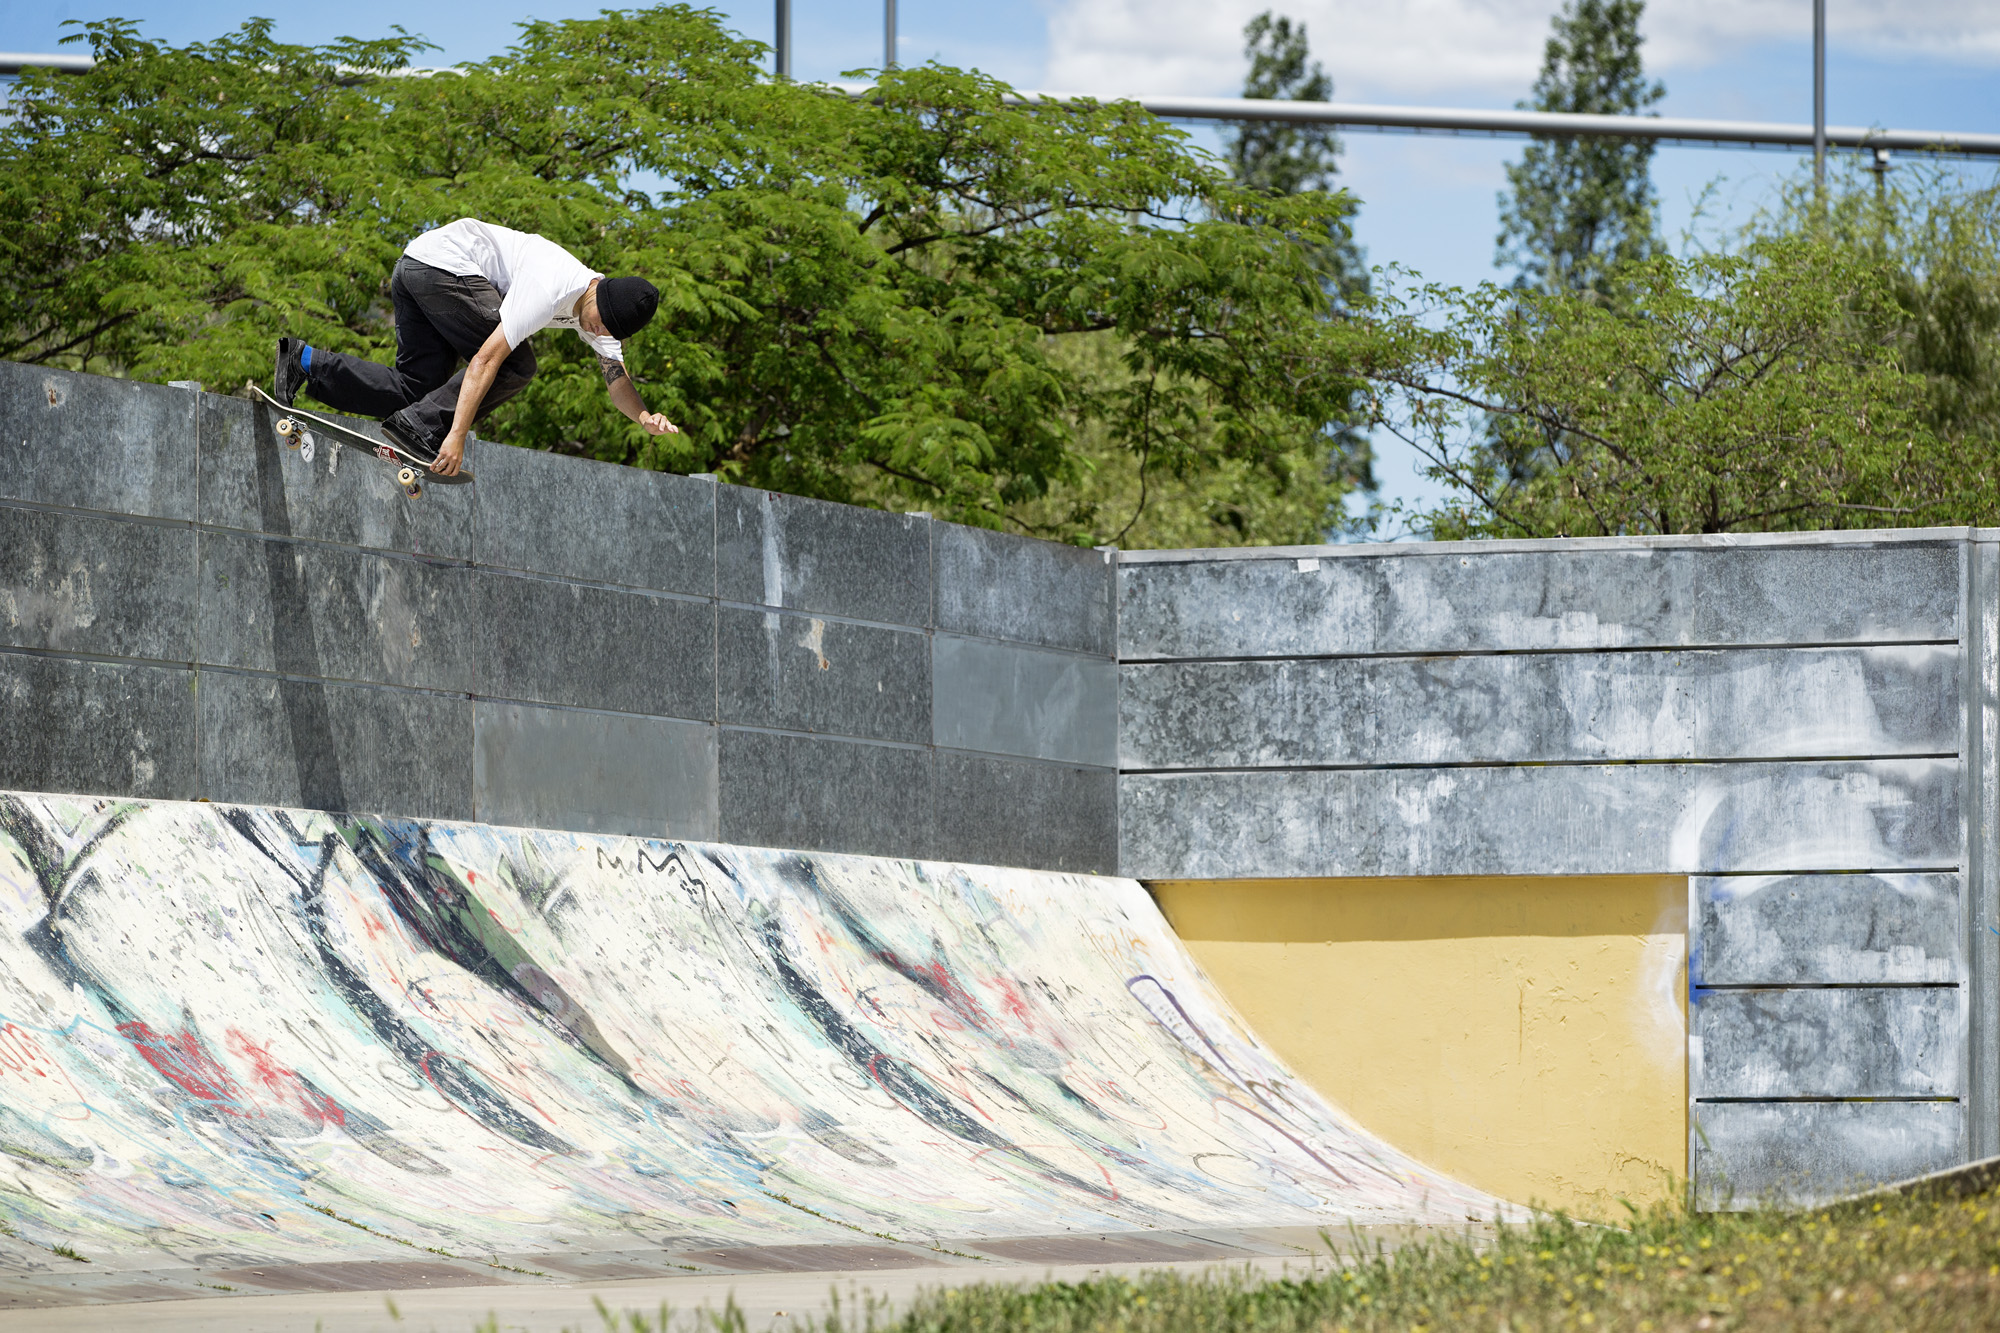 Vans Pro Skater Rowan Zorilla Puts a New Spin on a Timeless Footwear Classic